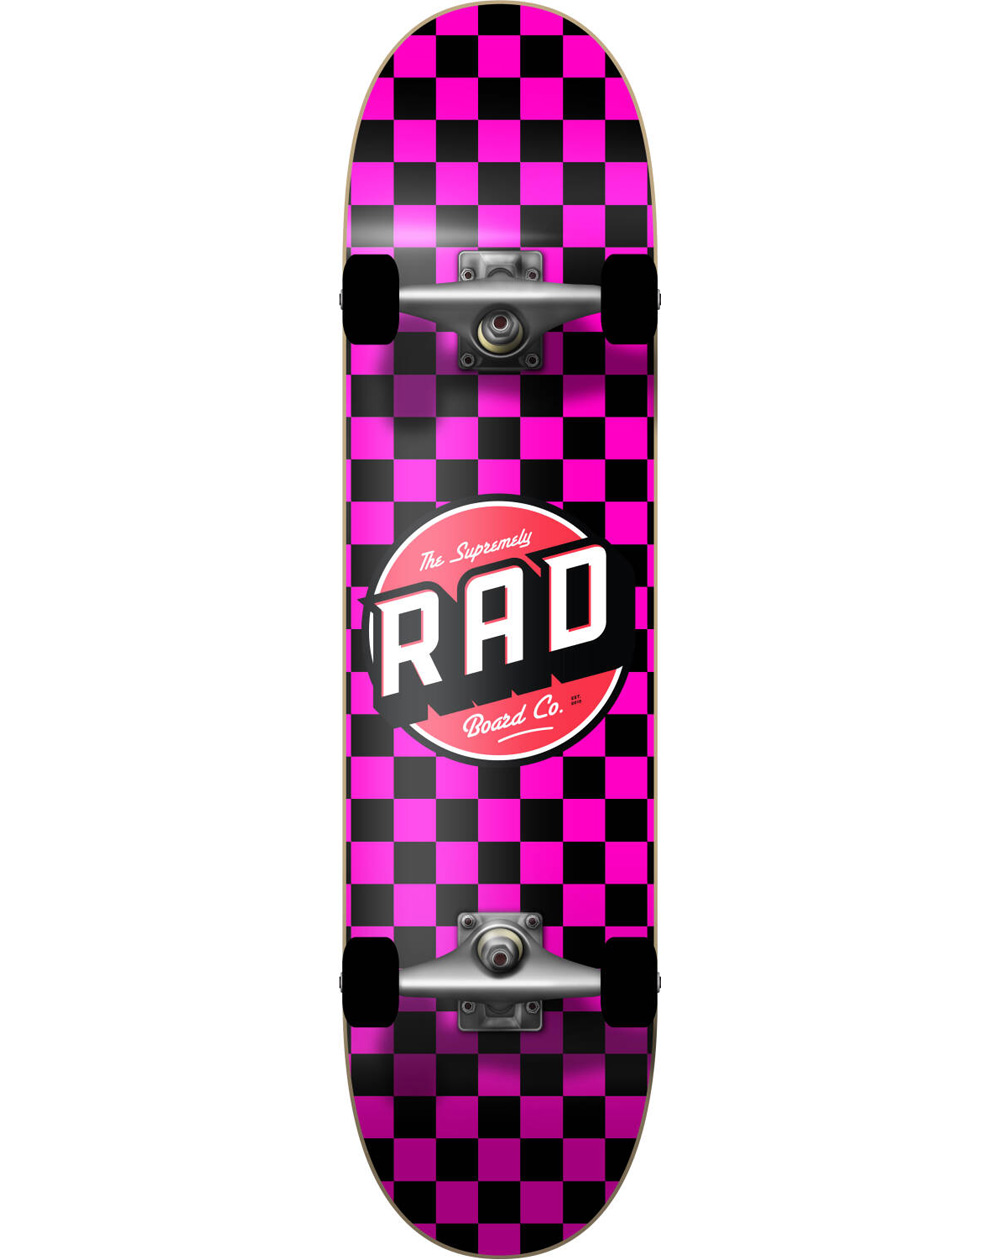 "Rad Skateboard Checkers 7.75"" Black/Pink"